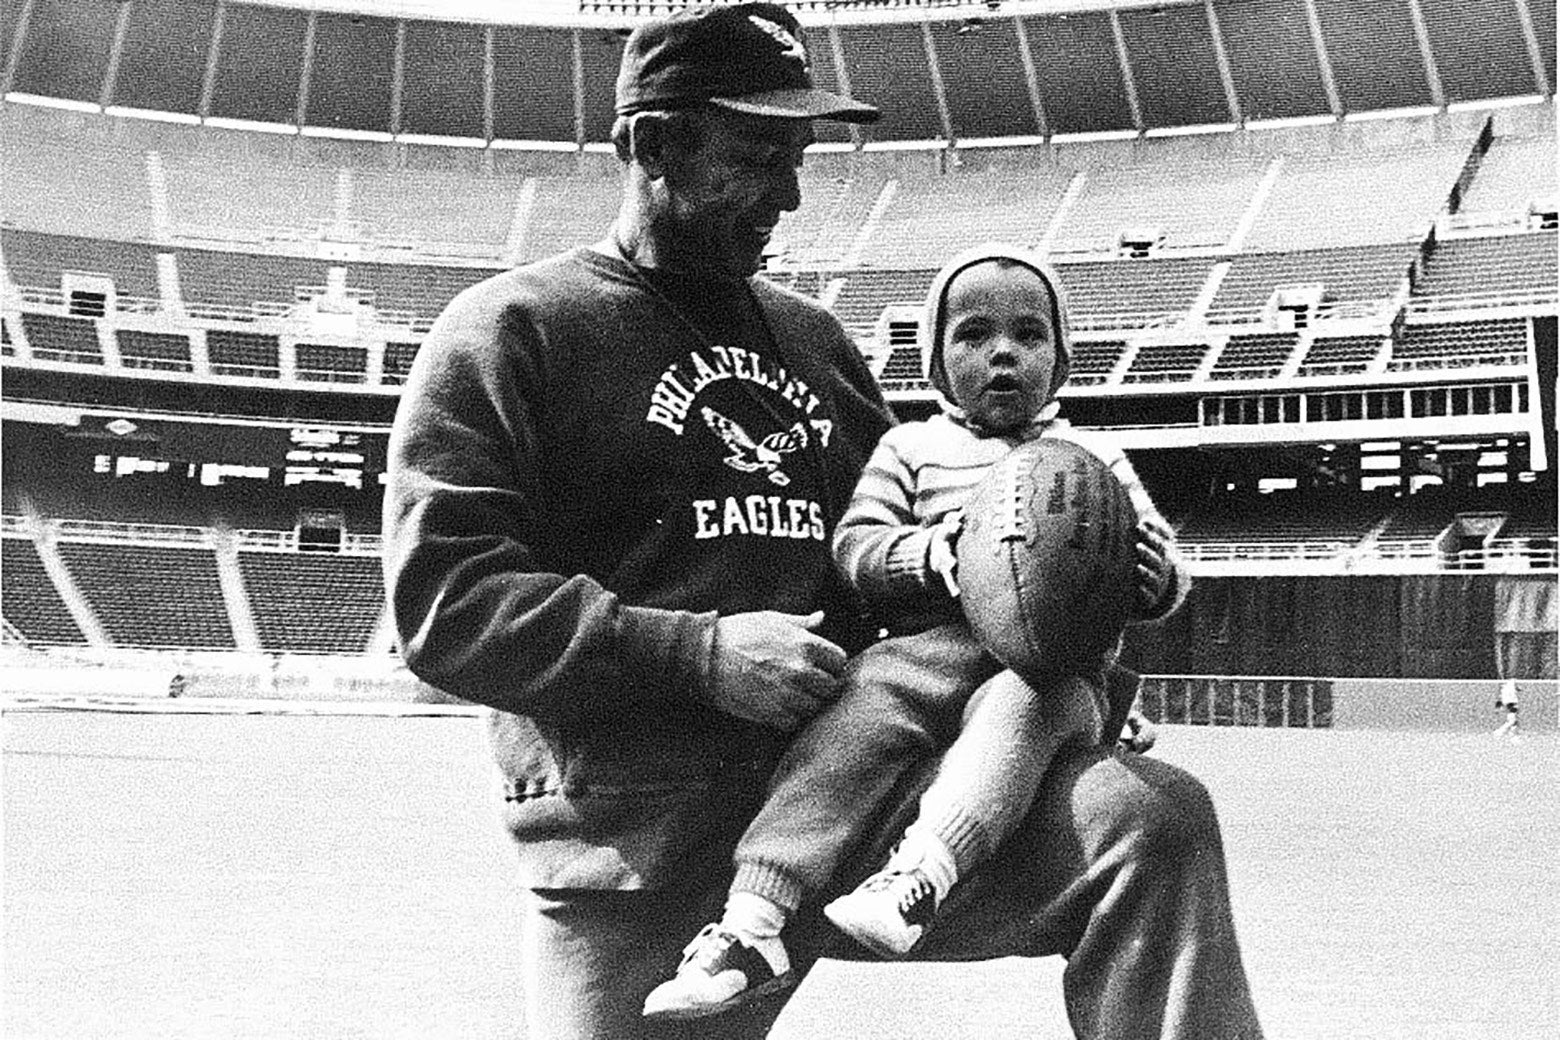 A black-and-white photo of the author as a toddler, holding a football, on the knee of his father inside a football stadium.